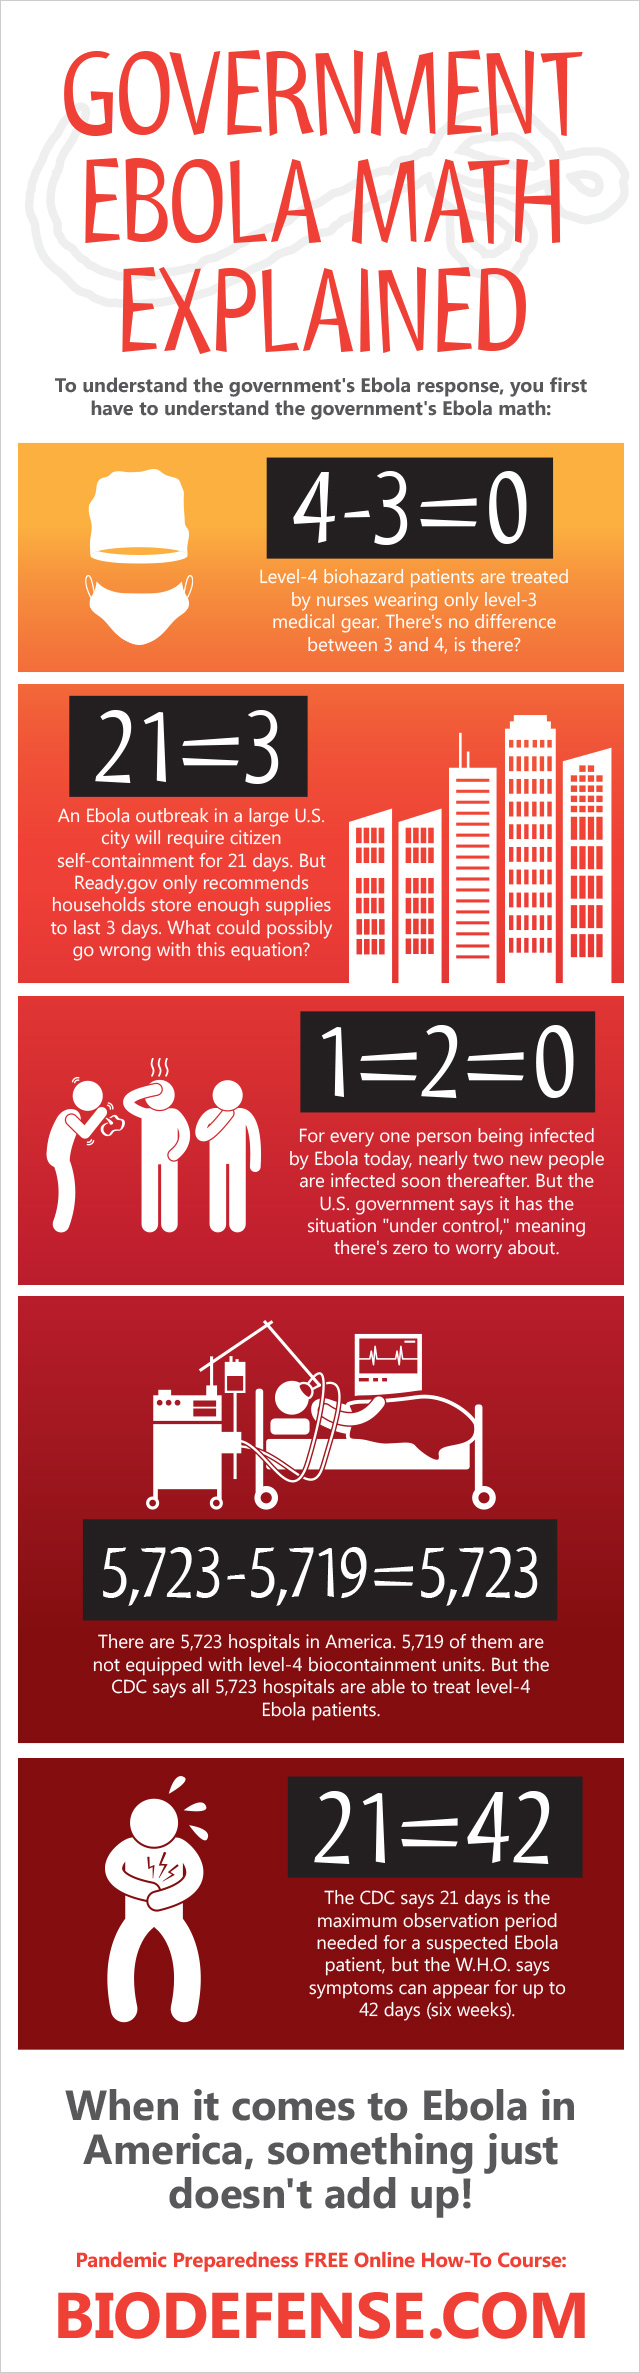 Infographic-Government-Ebola-Math-Explained